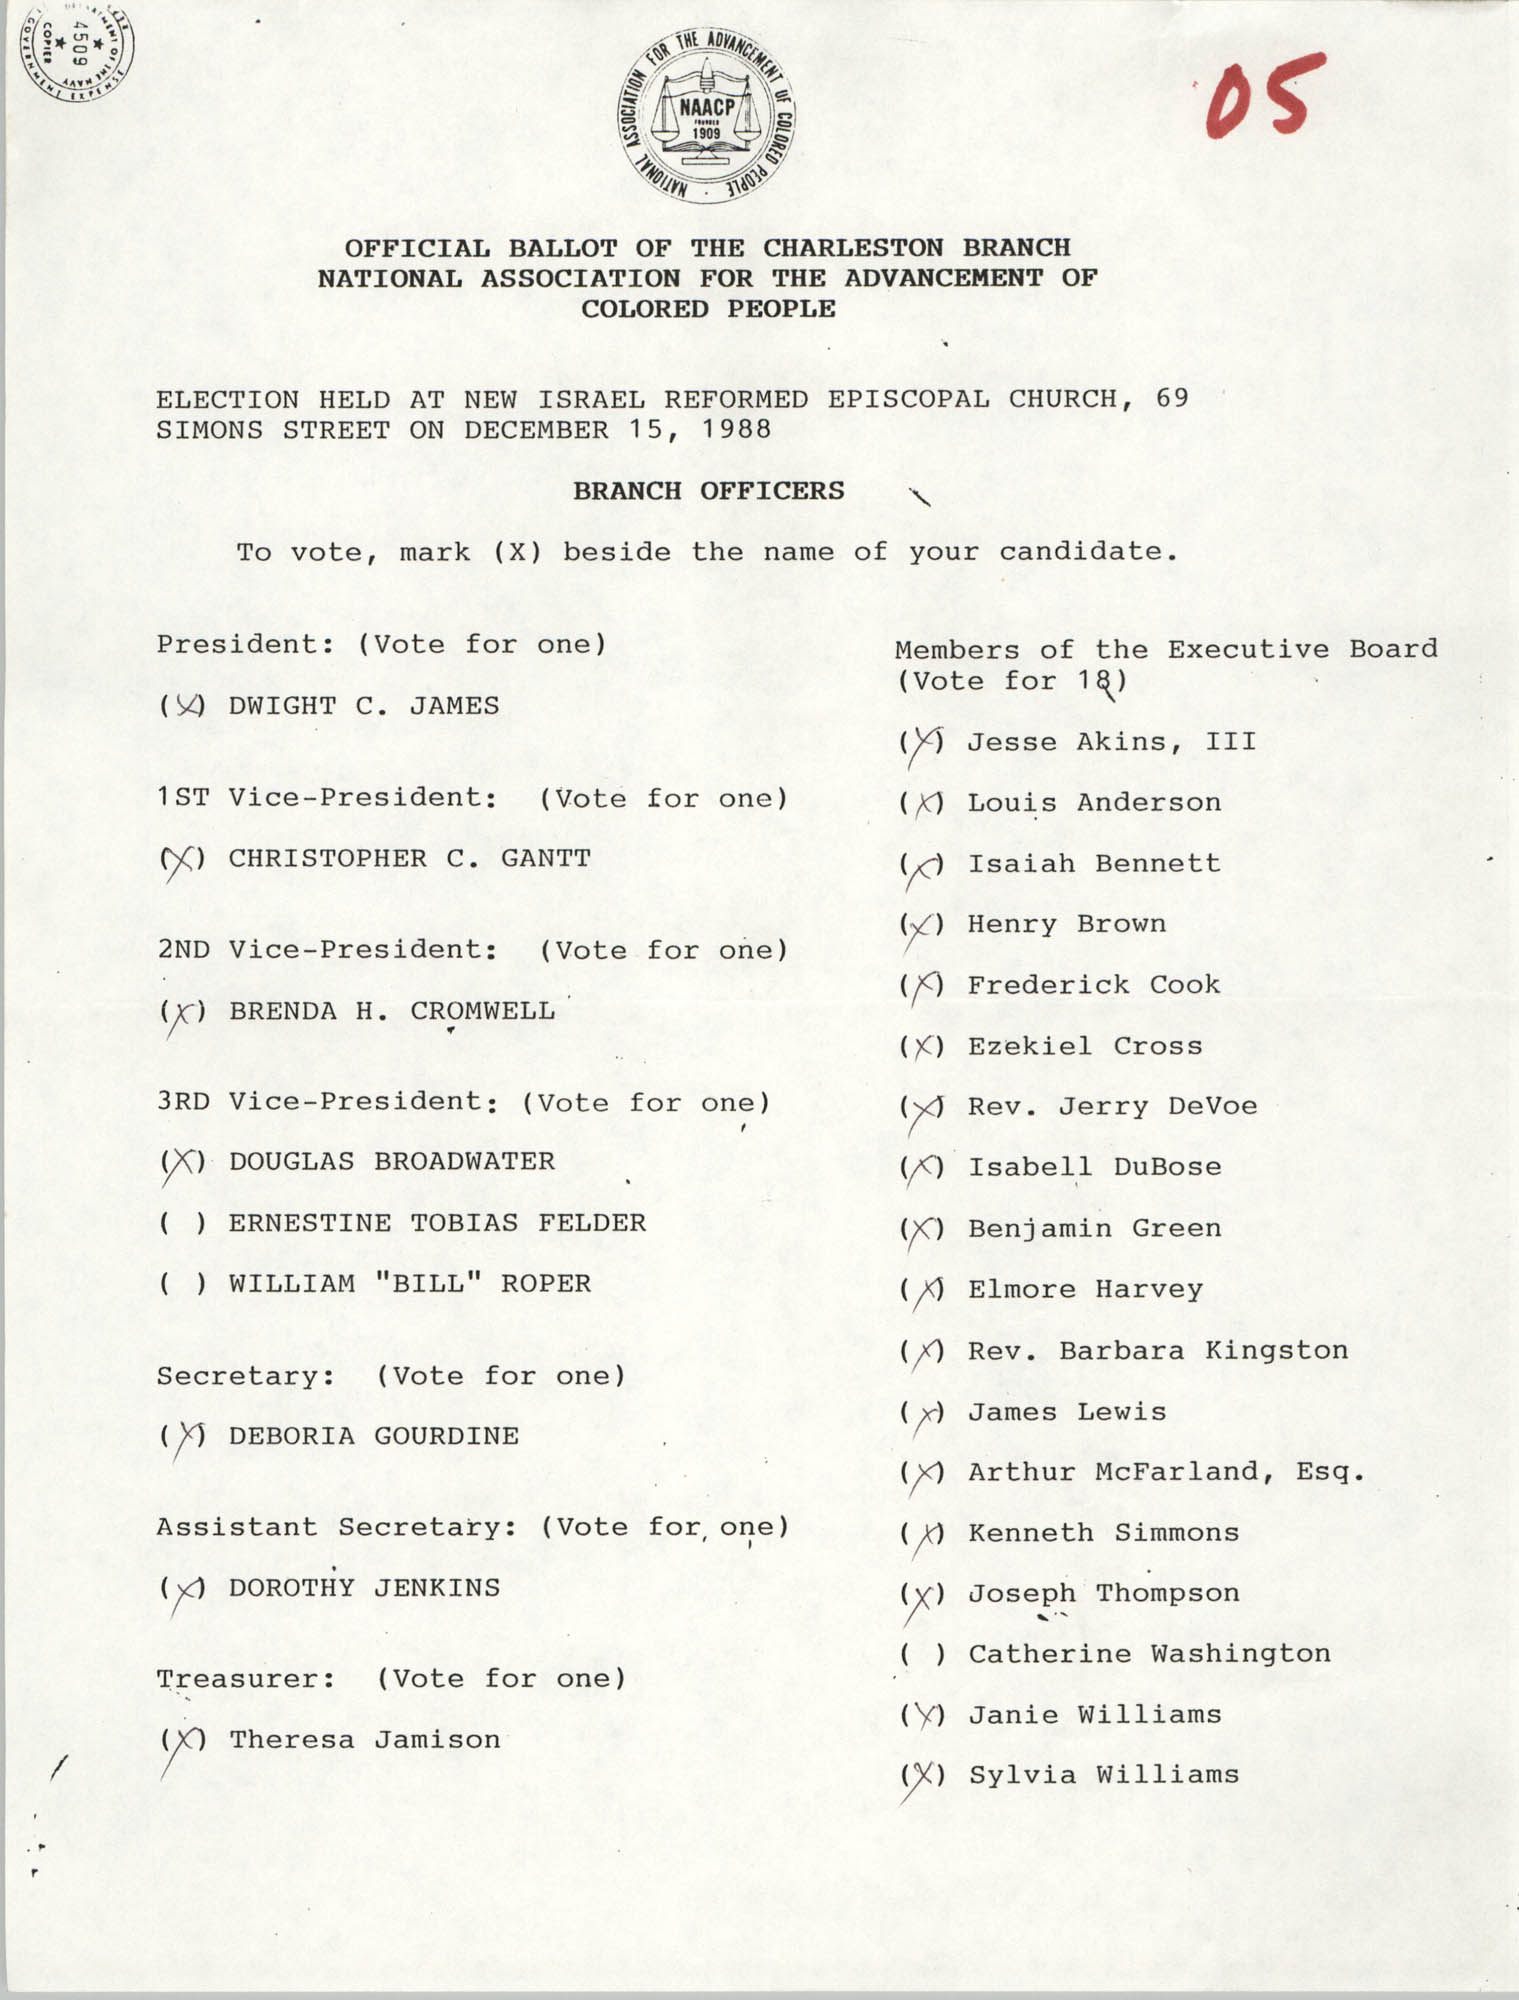 Official Ballot of the Charleston Branch of the NAACP, 05